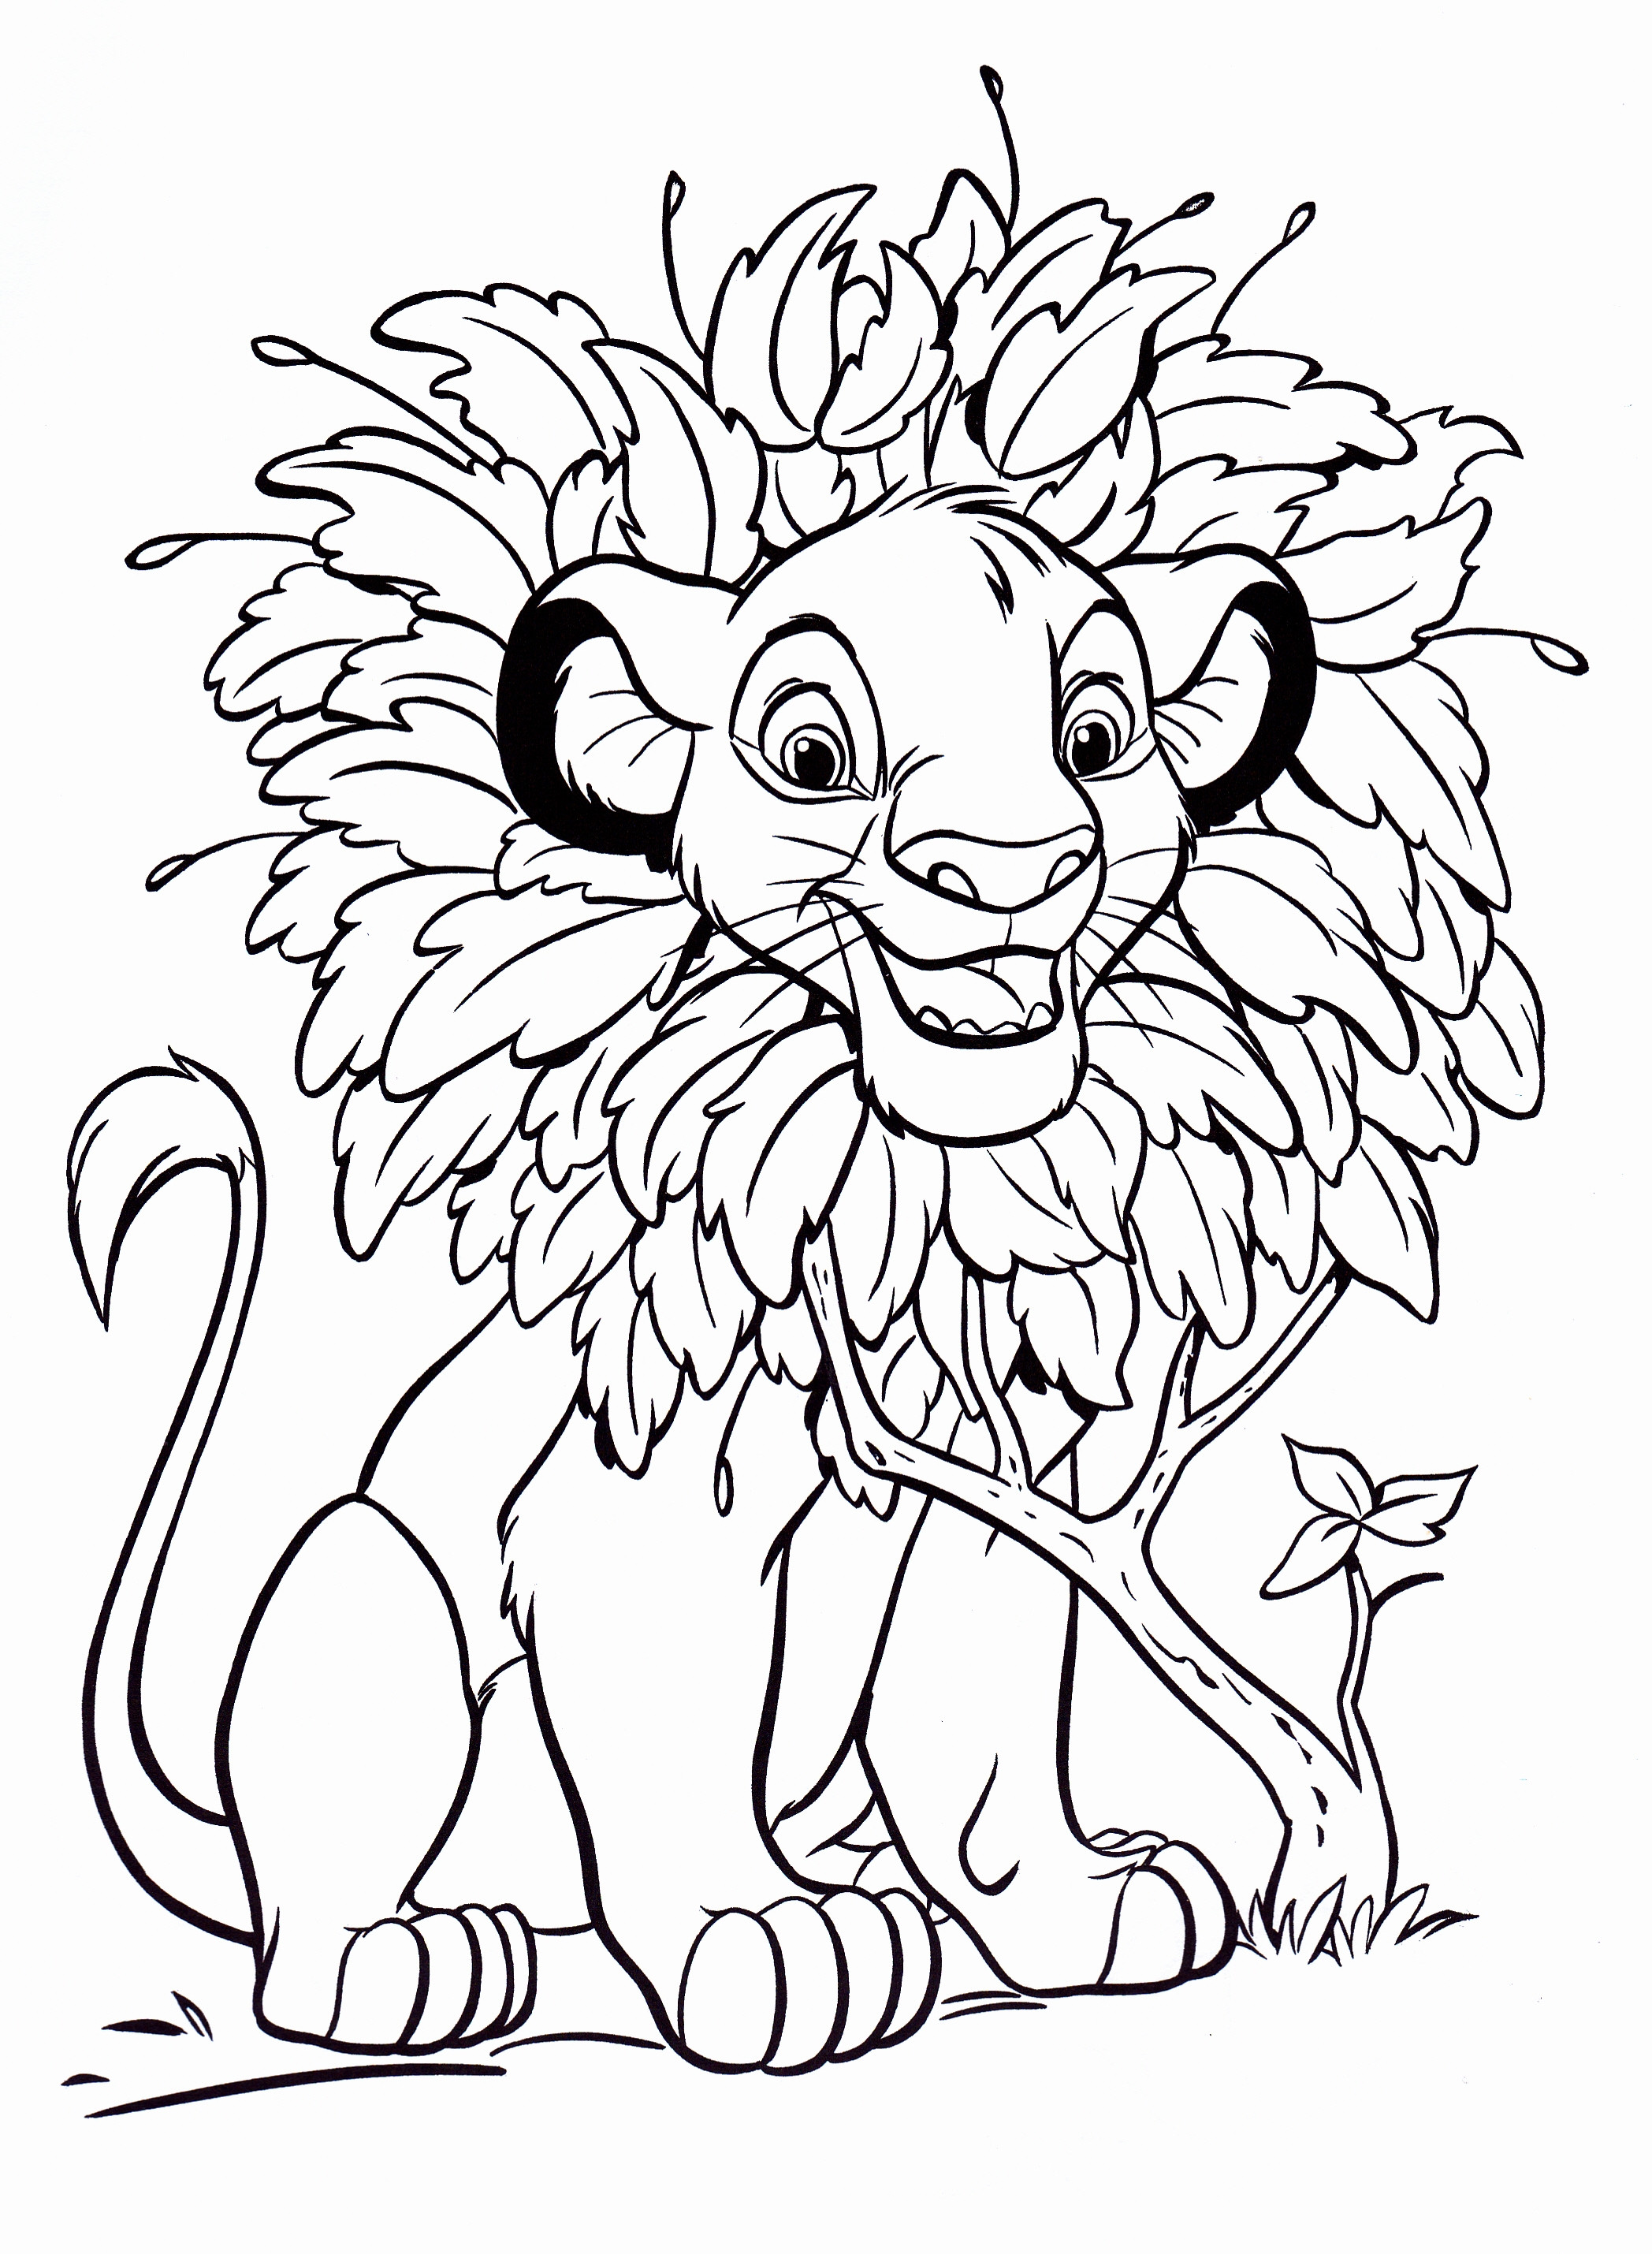 Coloring Book For Kids  Free Printable Simba Coloring Pages For Kids